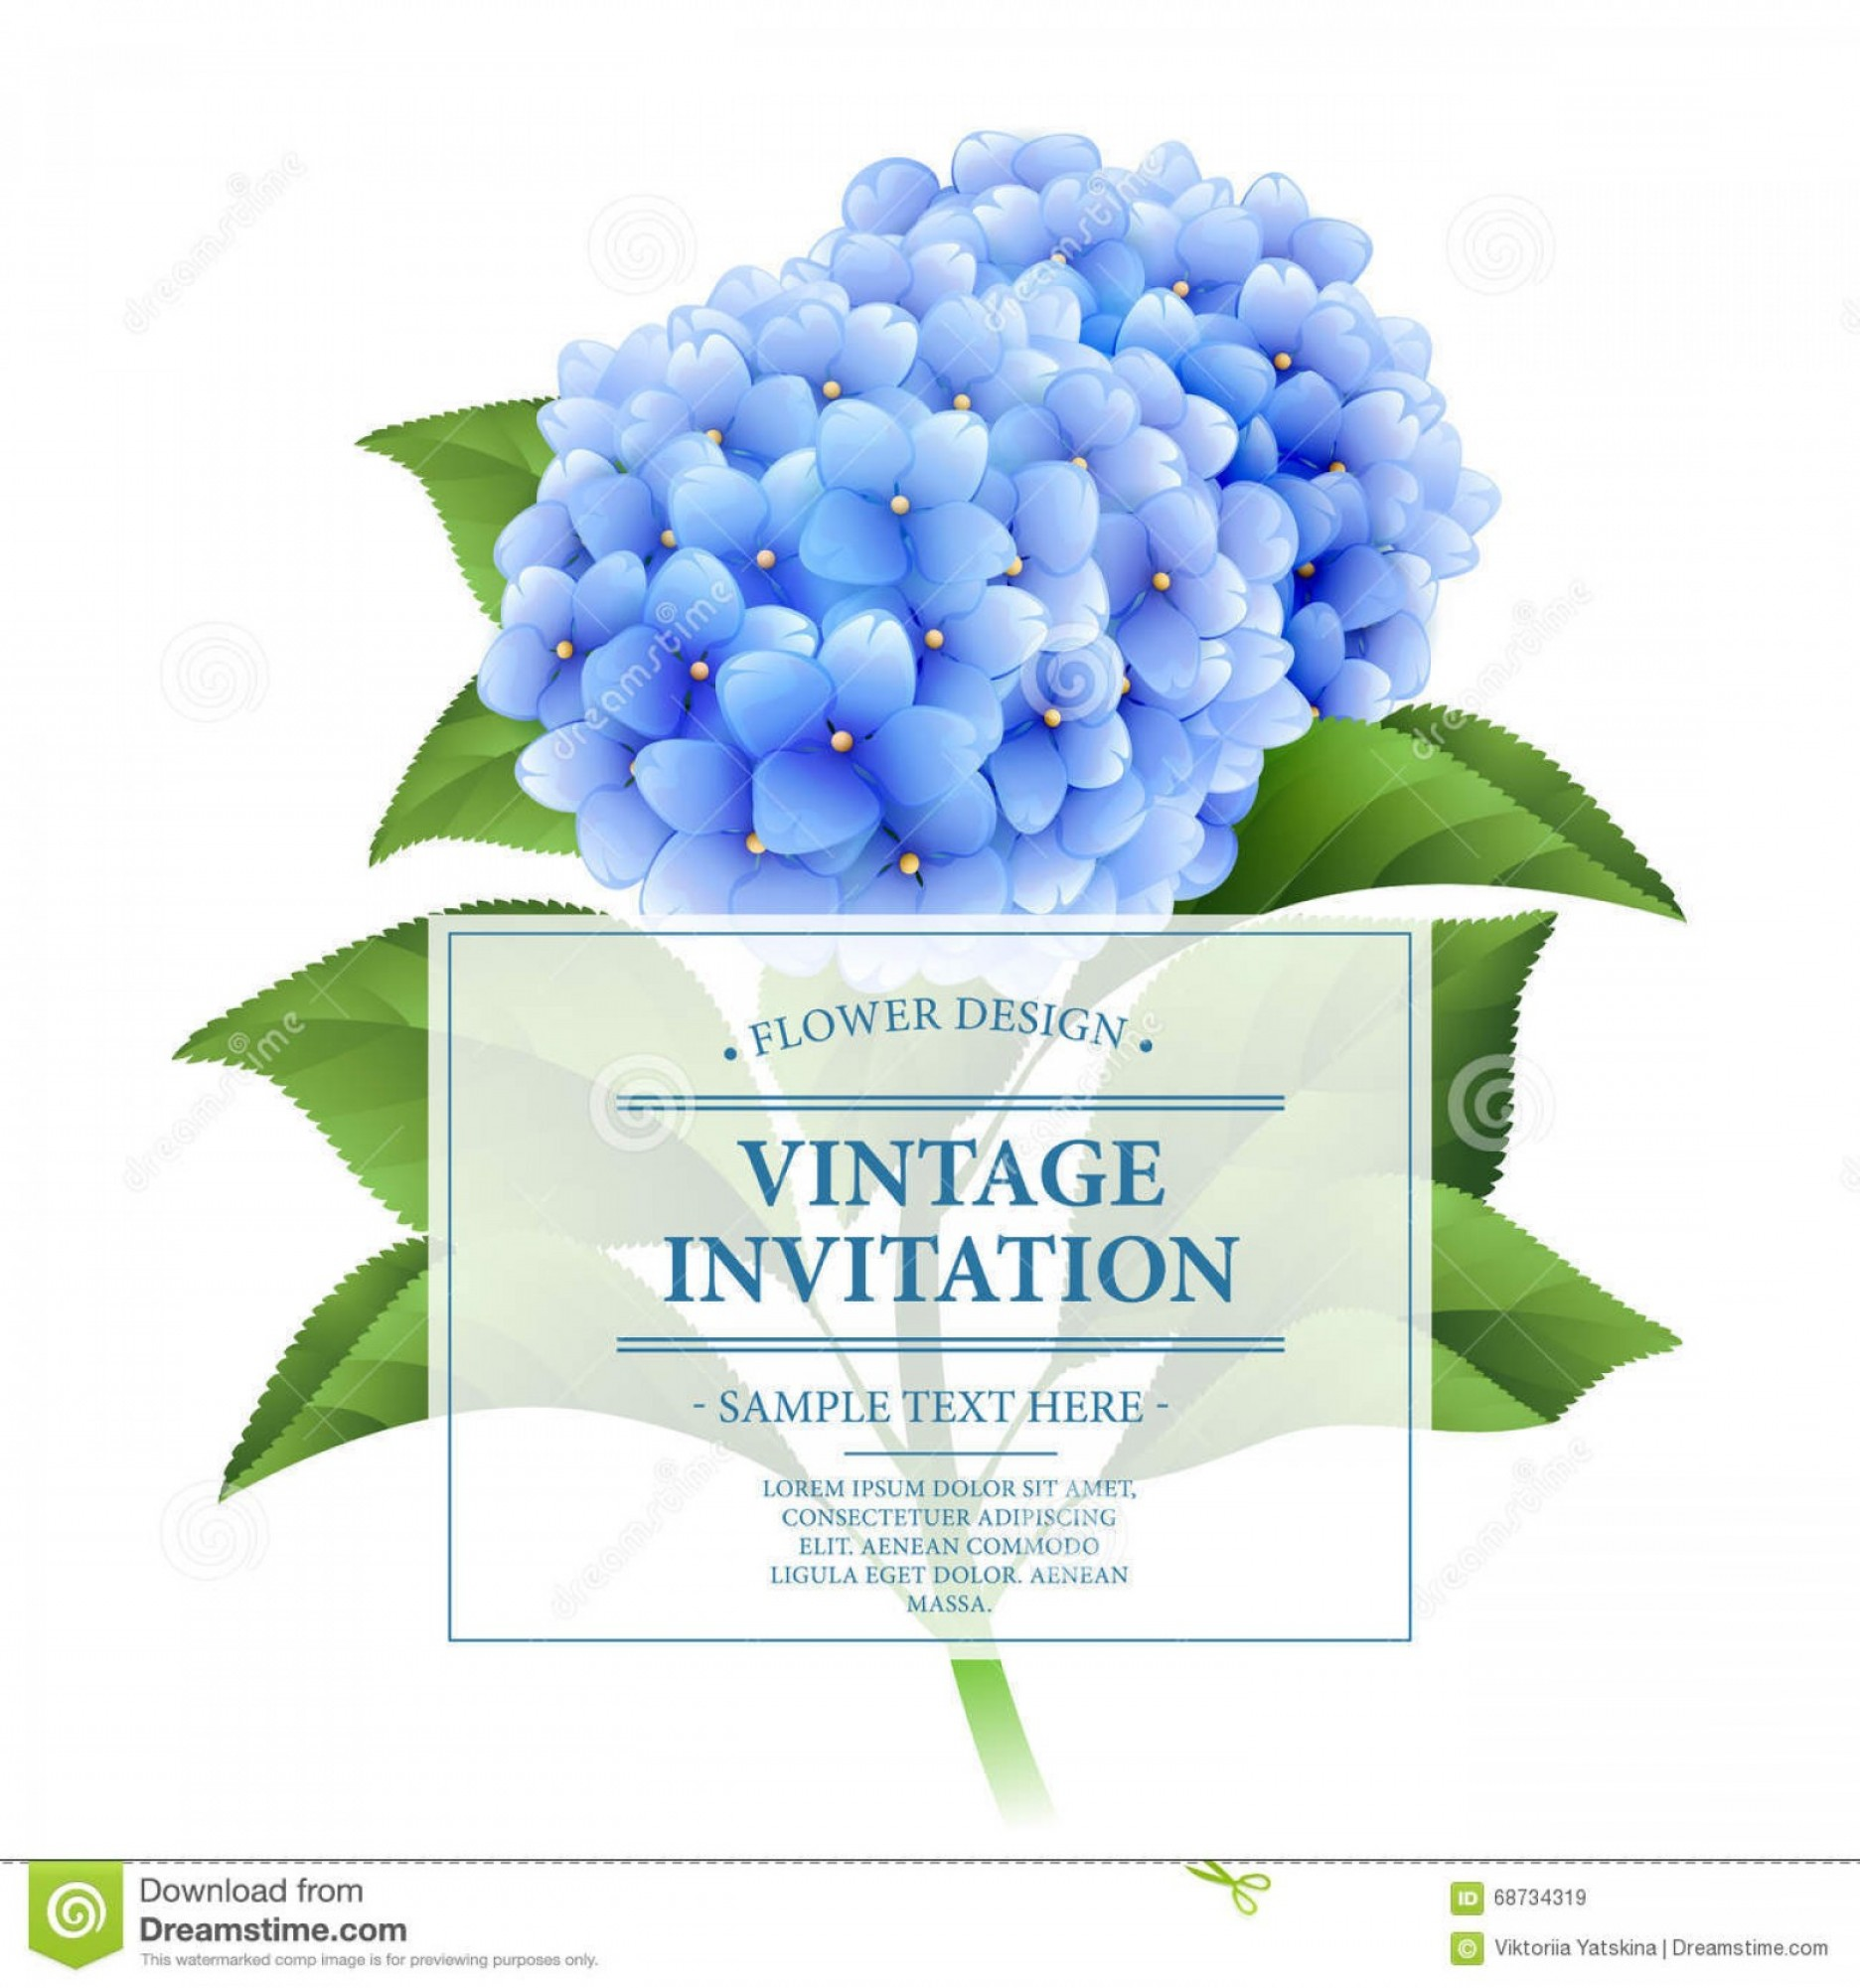 Vector Image Blue Hydrangeas: Stock Illustration Invitation Card Blue Hydrangea Flowers Vintage Floral Card Vector Illustration Eps Image